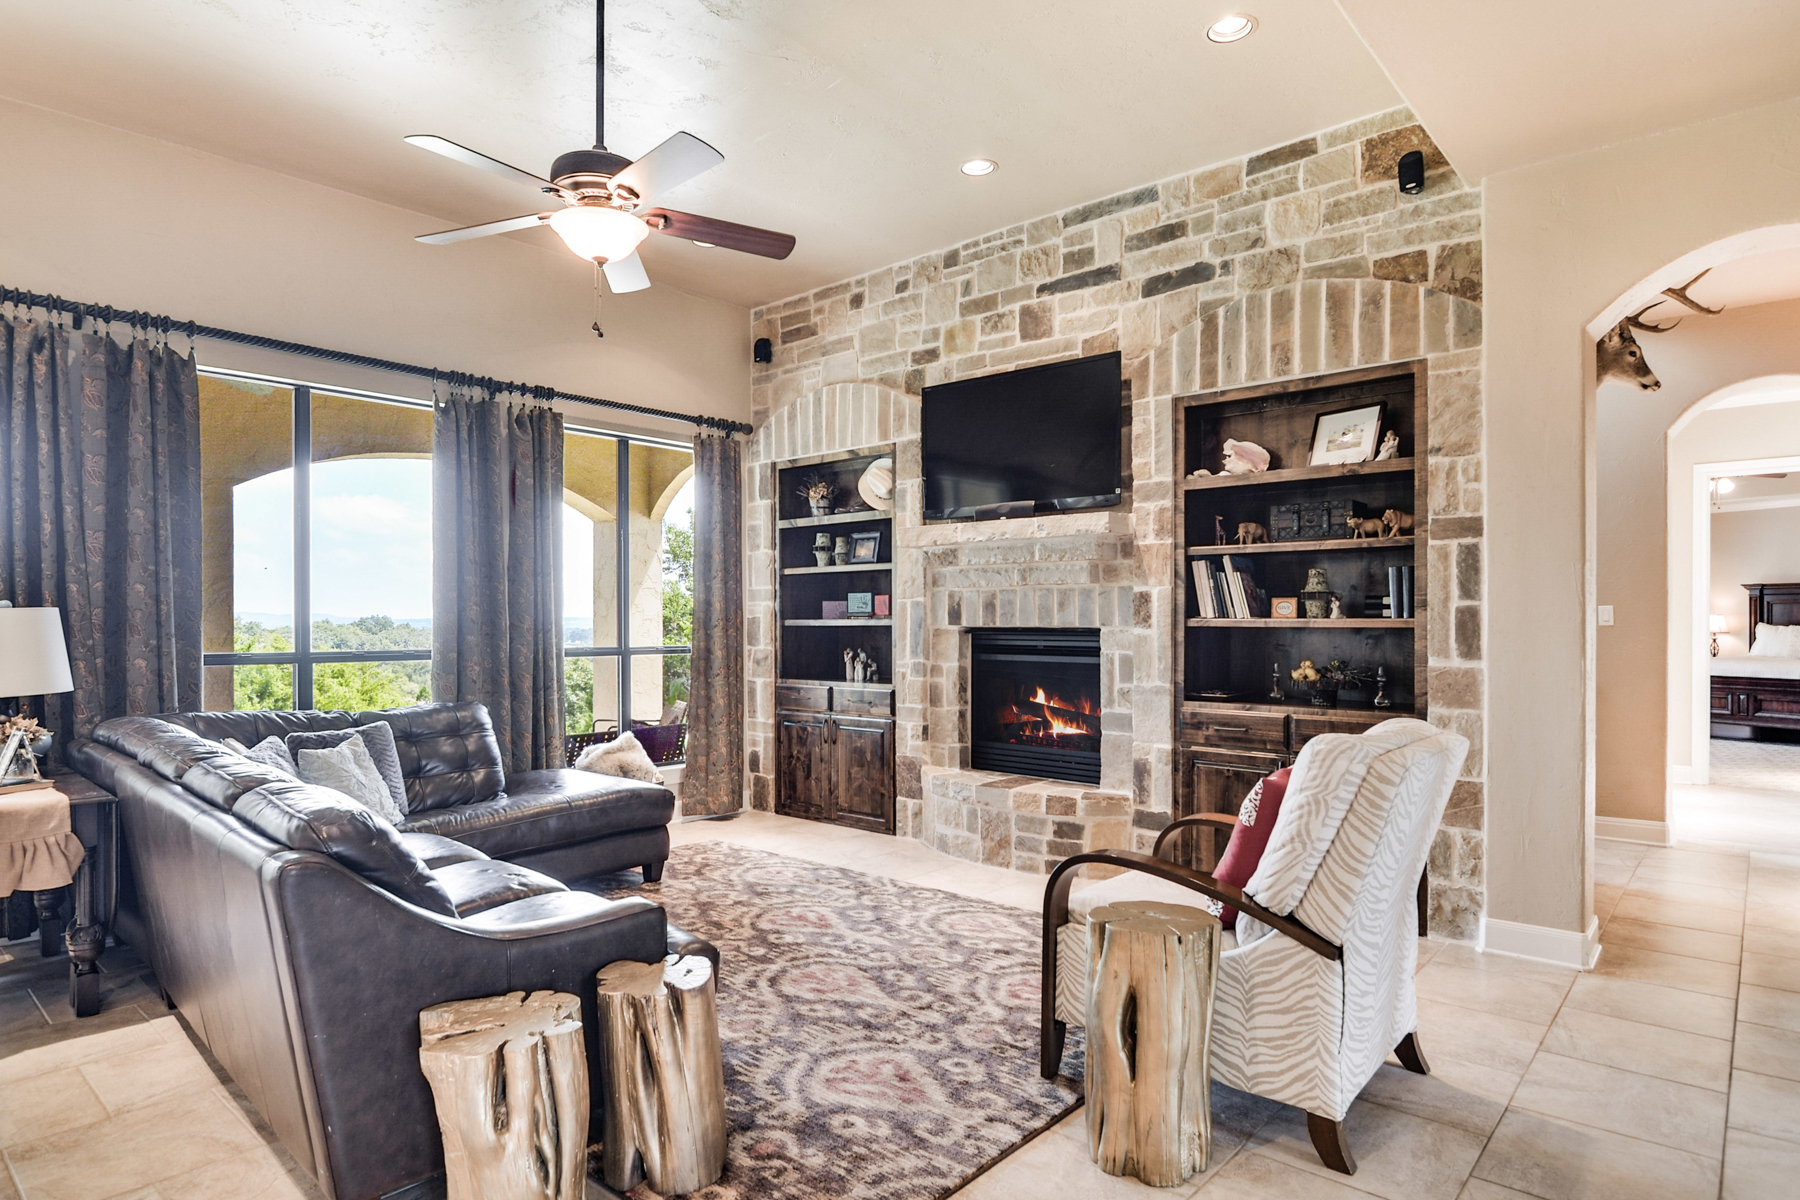 Additional photo for property listing at Fabulous Mediterranean Home in Menger Springs 108 Cabin Springs Boerne, Texas 78006 United States